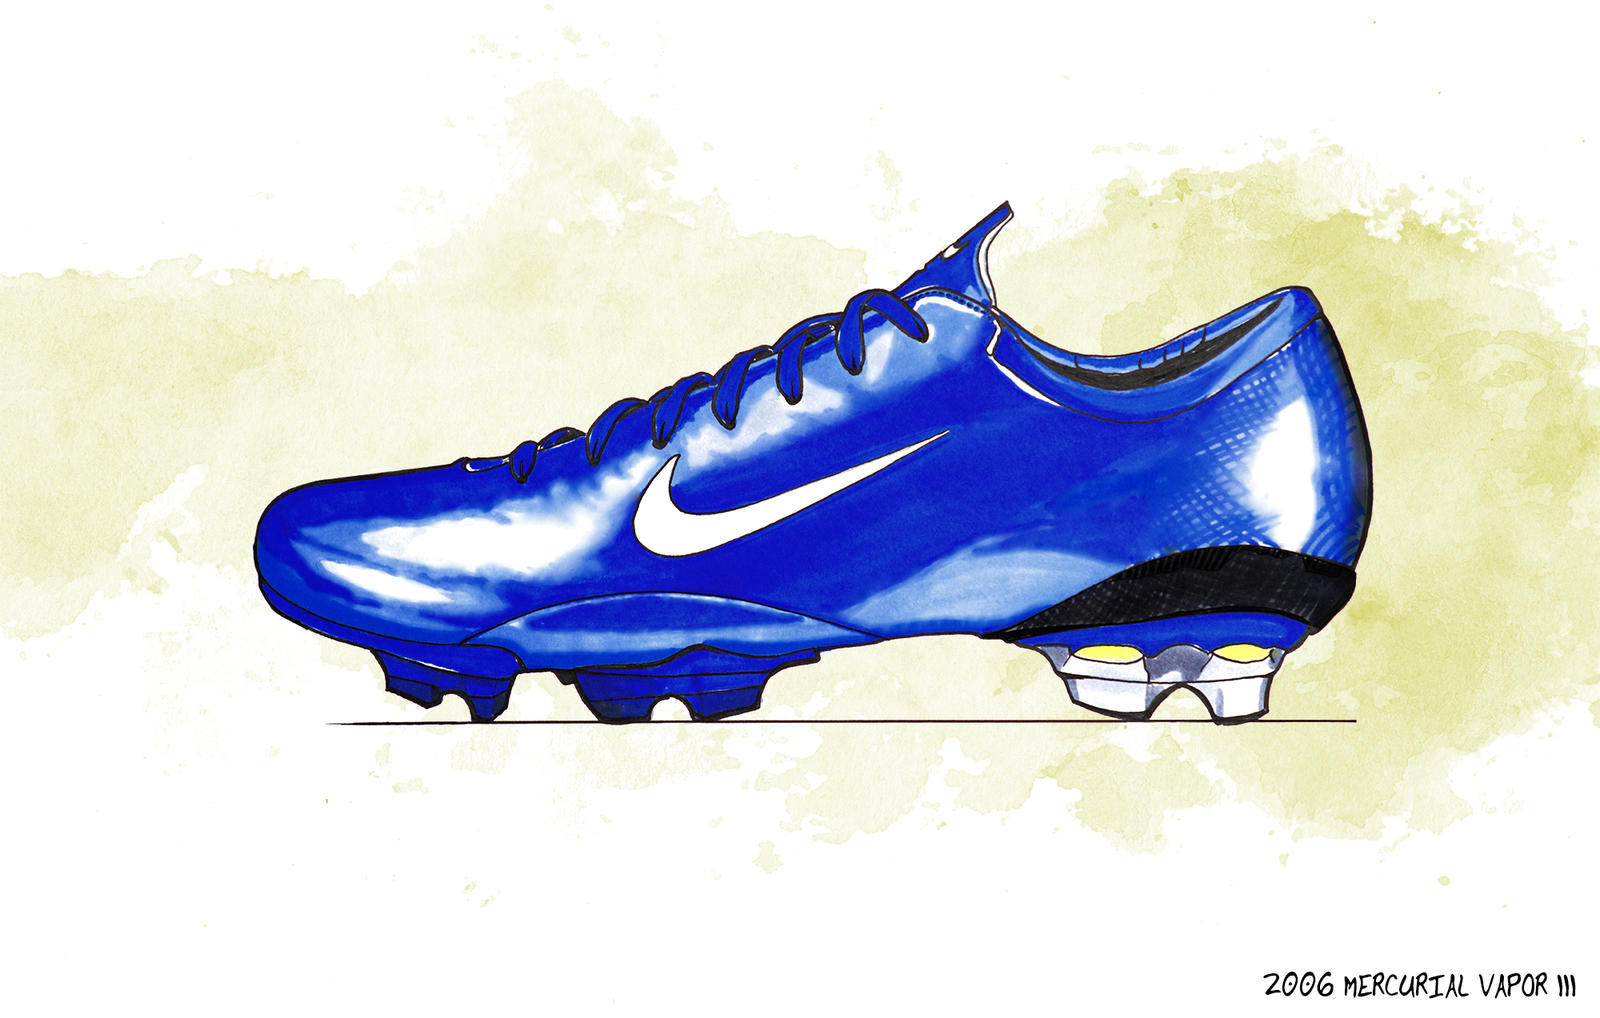 e3bd12bdad0 Nike Mercurial Highlights  From Fast to Faster - Nike News